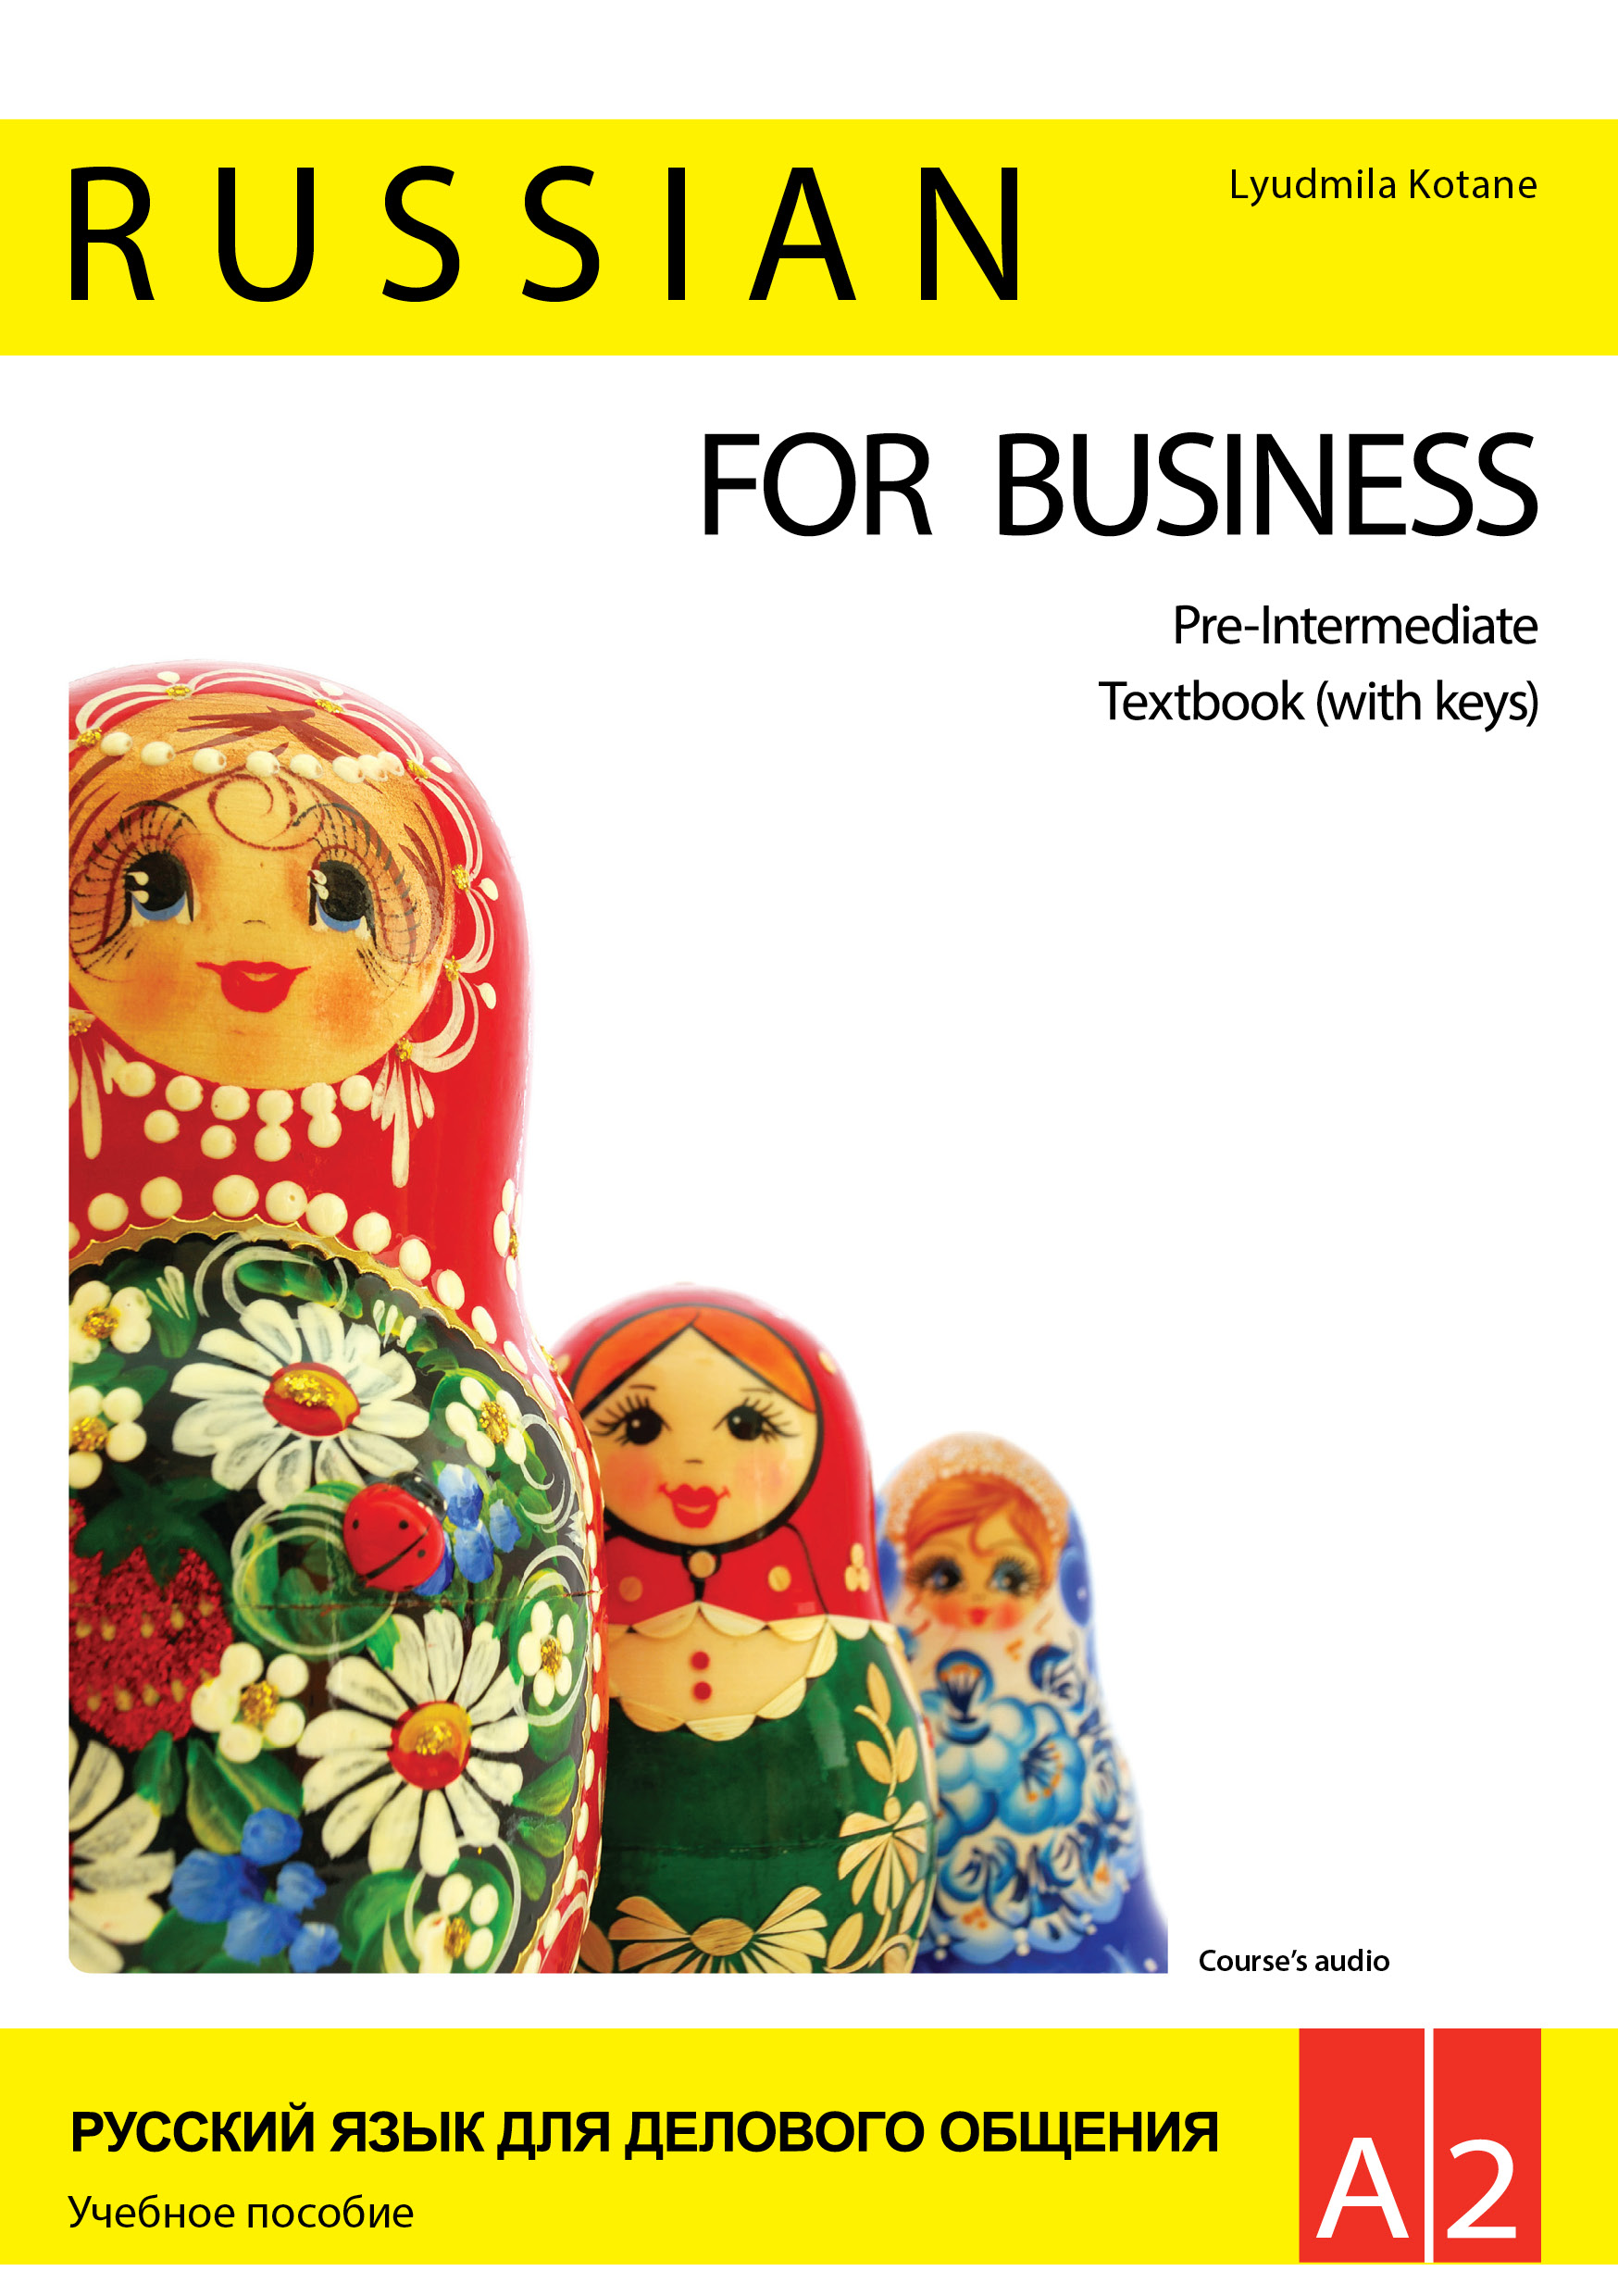 A2_textbook_cover